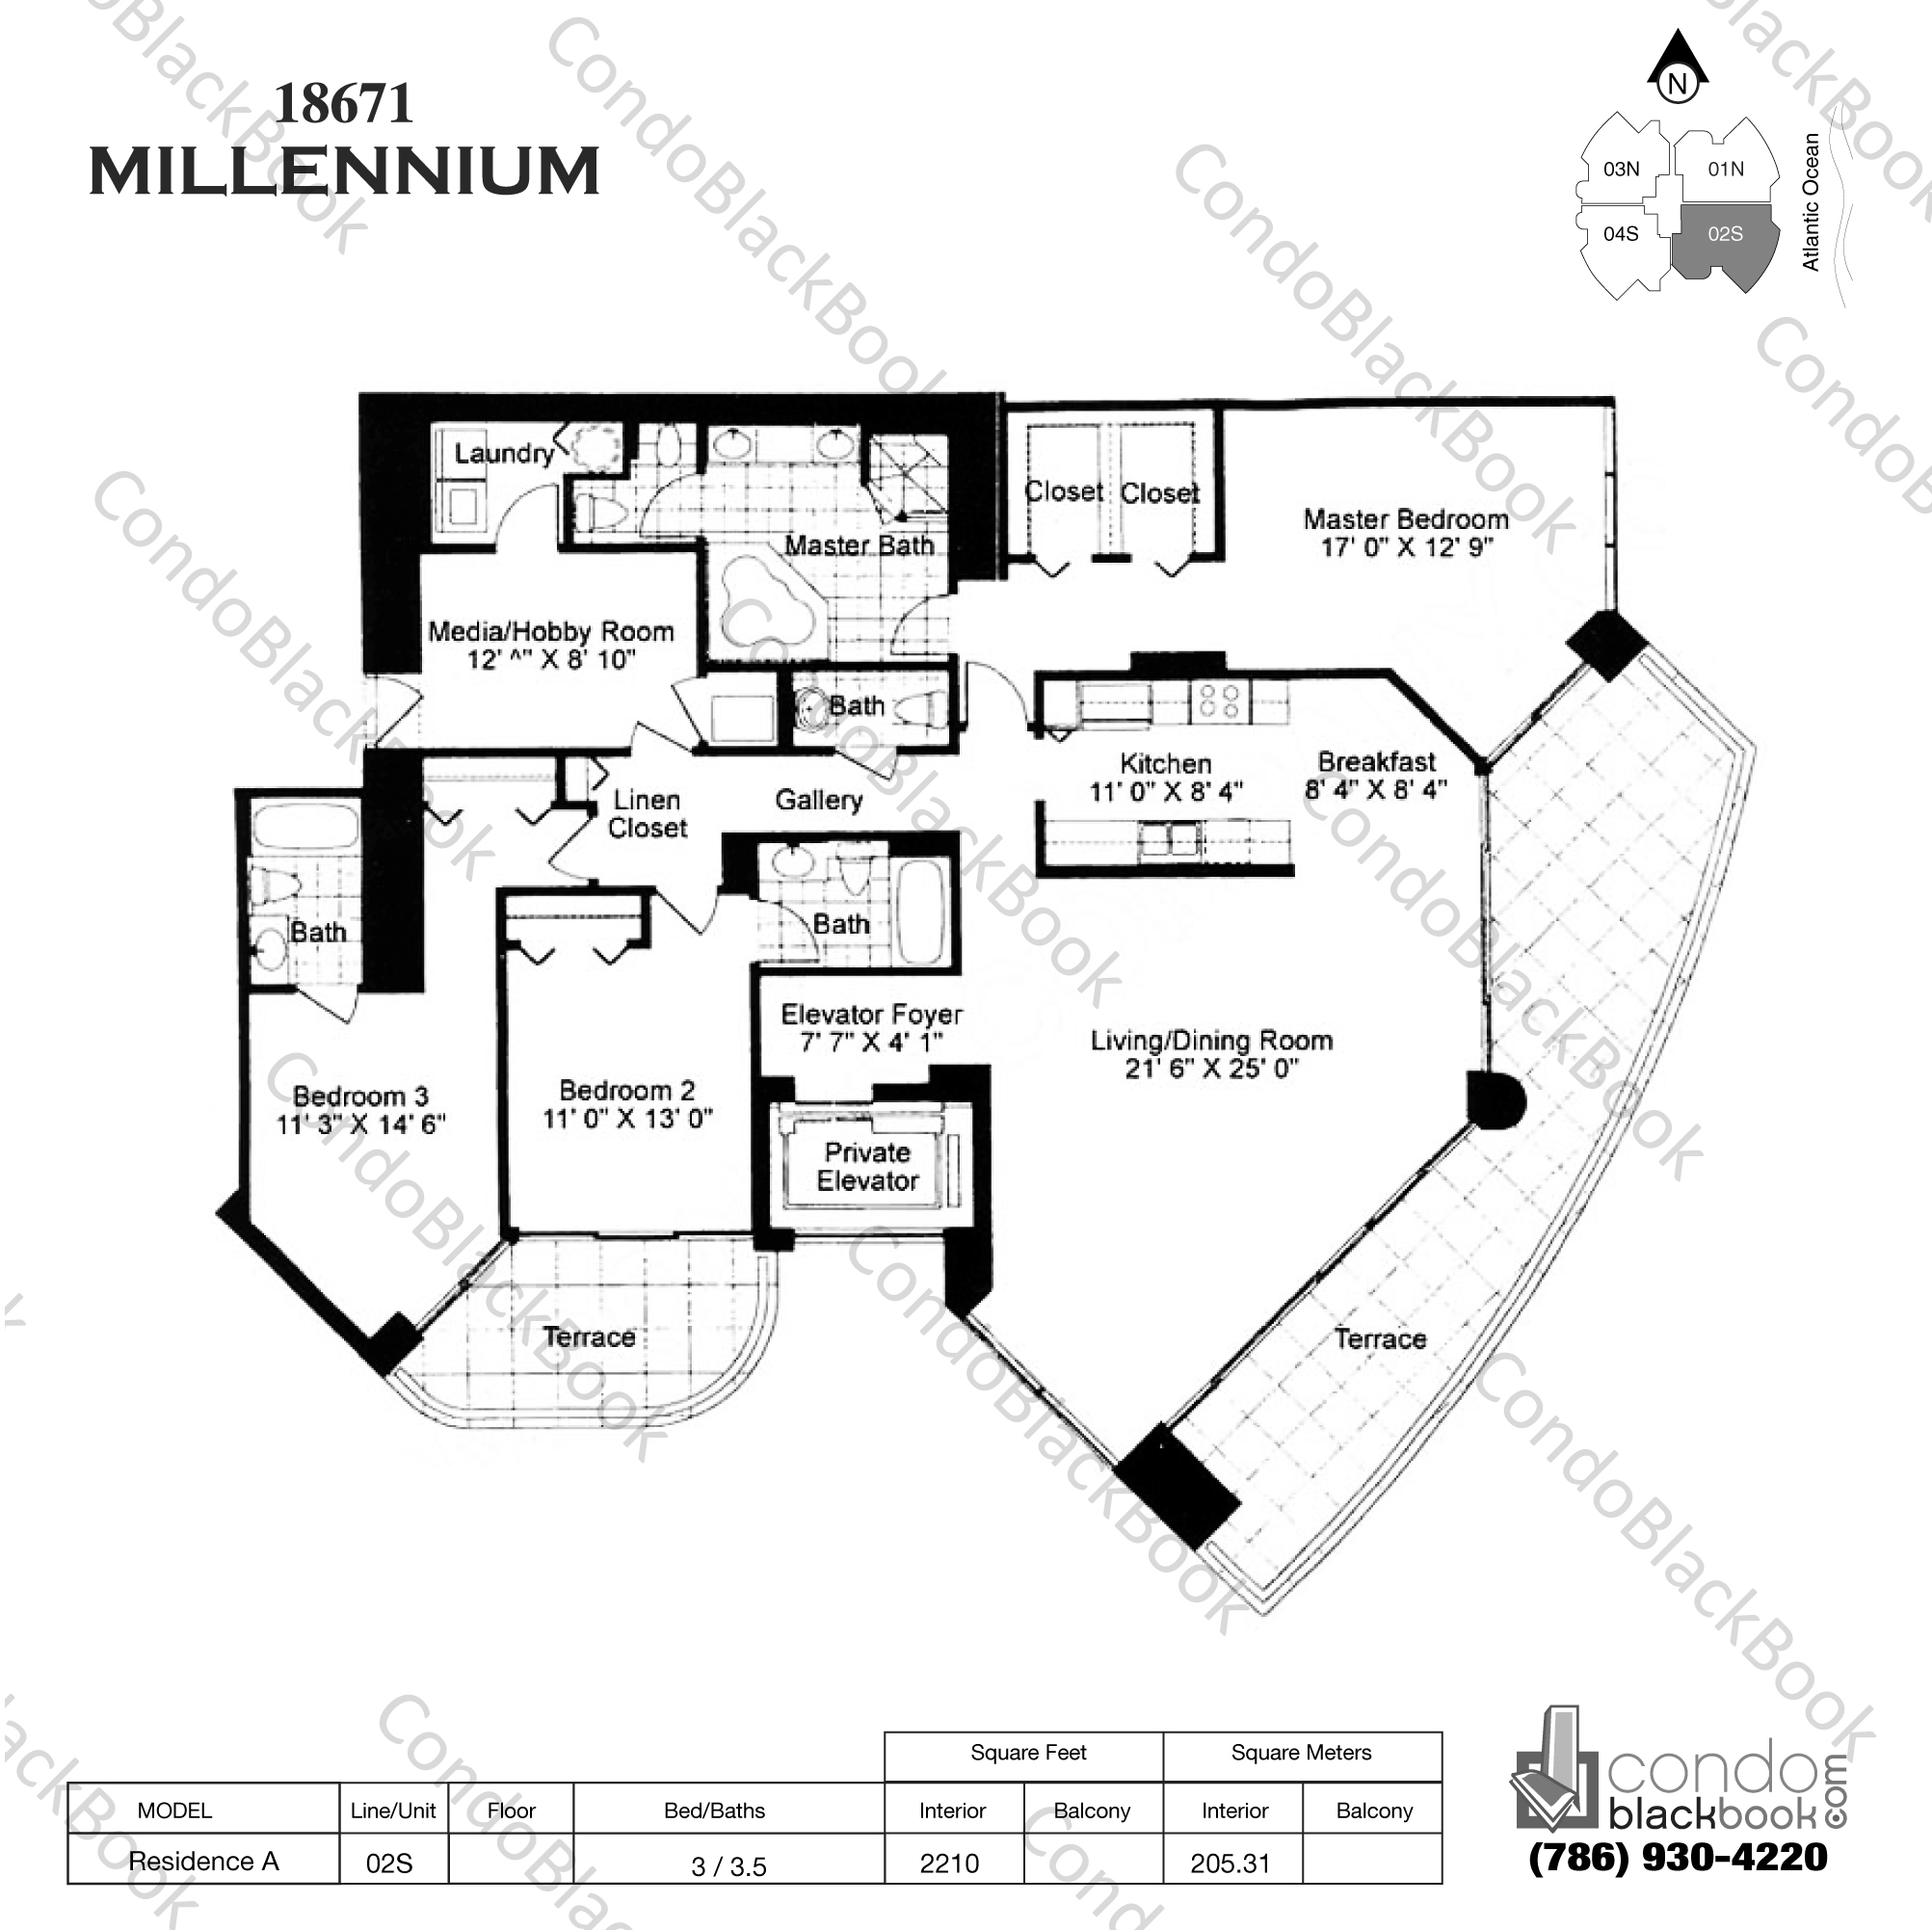 Floor plan for Millennium Sunny Isles Beach, model Res. AS, line 02, 3 / 3.5 bedrooms, 2210 sq ft